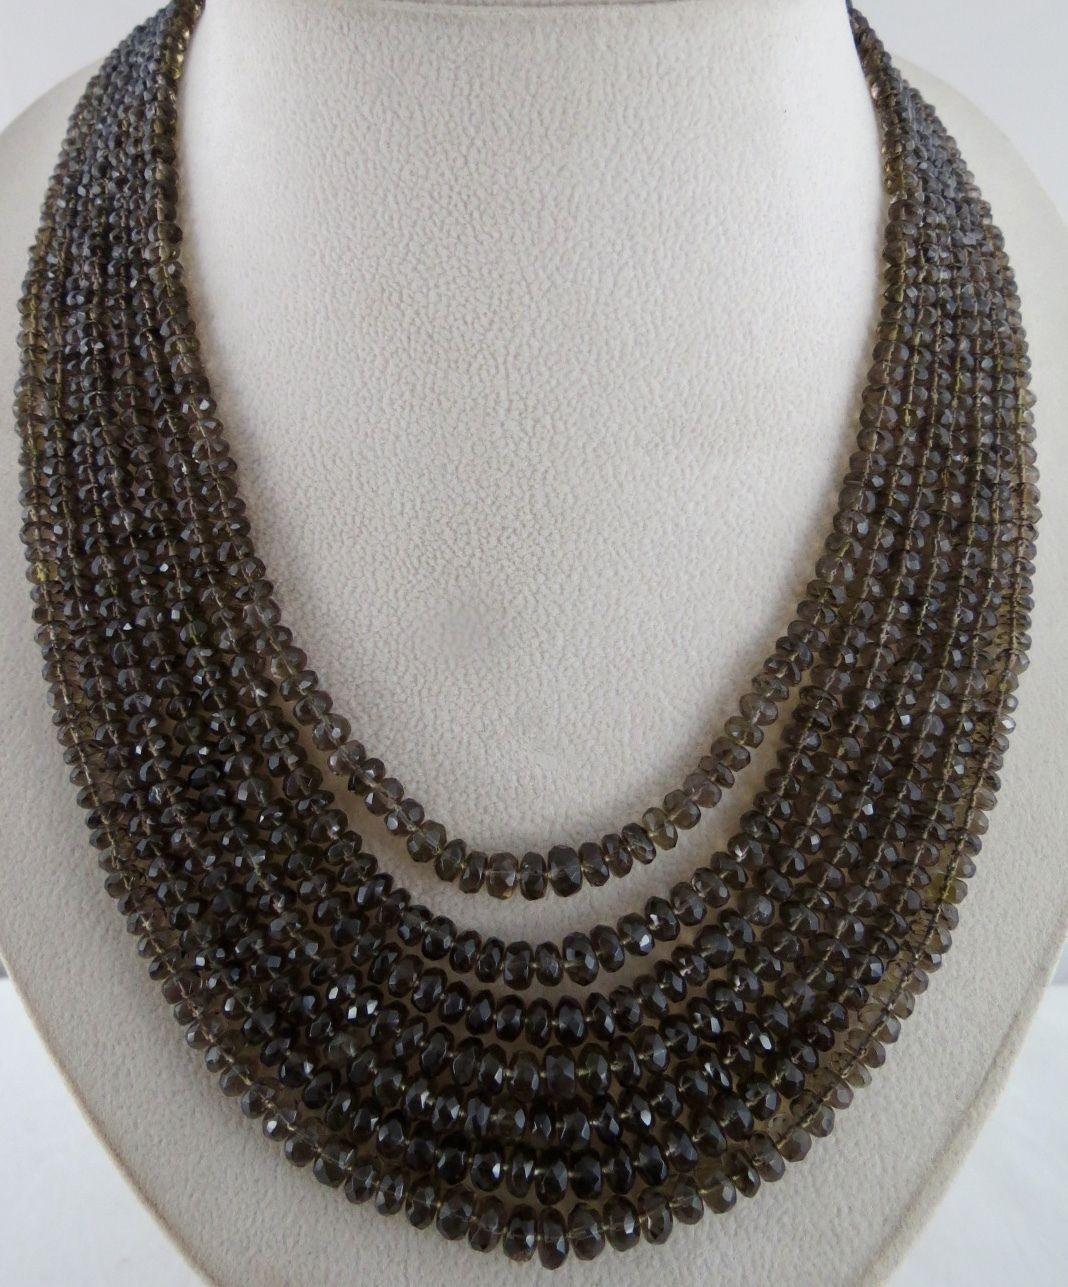 7 LINE 610 CTS NATURAL BLACK SMOKY QUARTZ FACETED ROUND BEADS LADIES NECKLACE